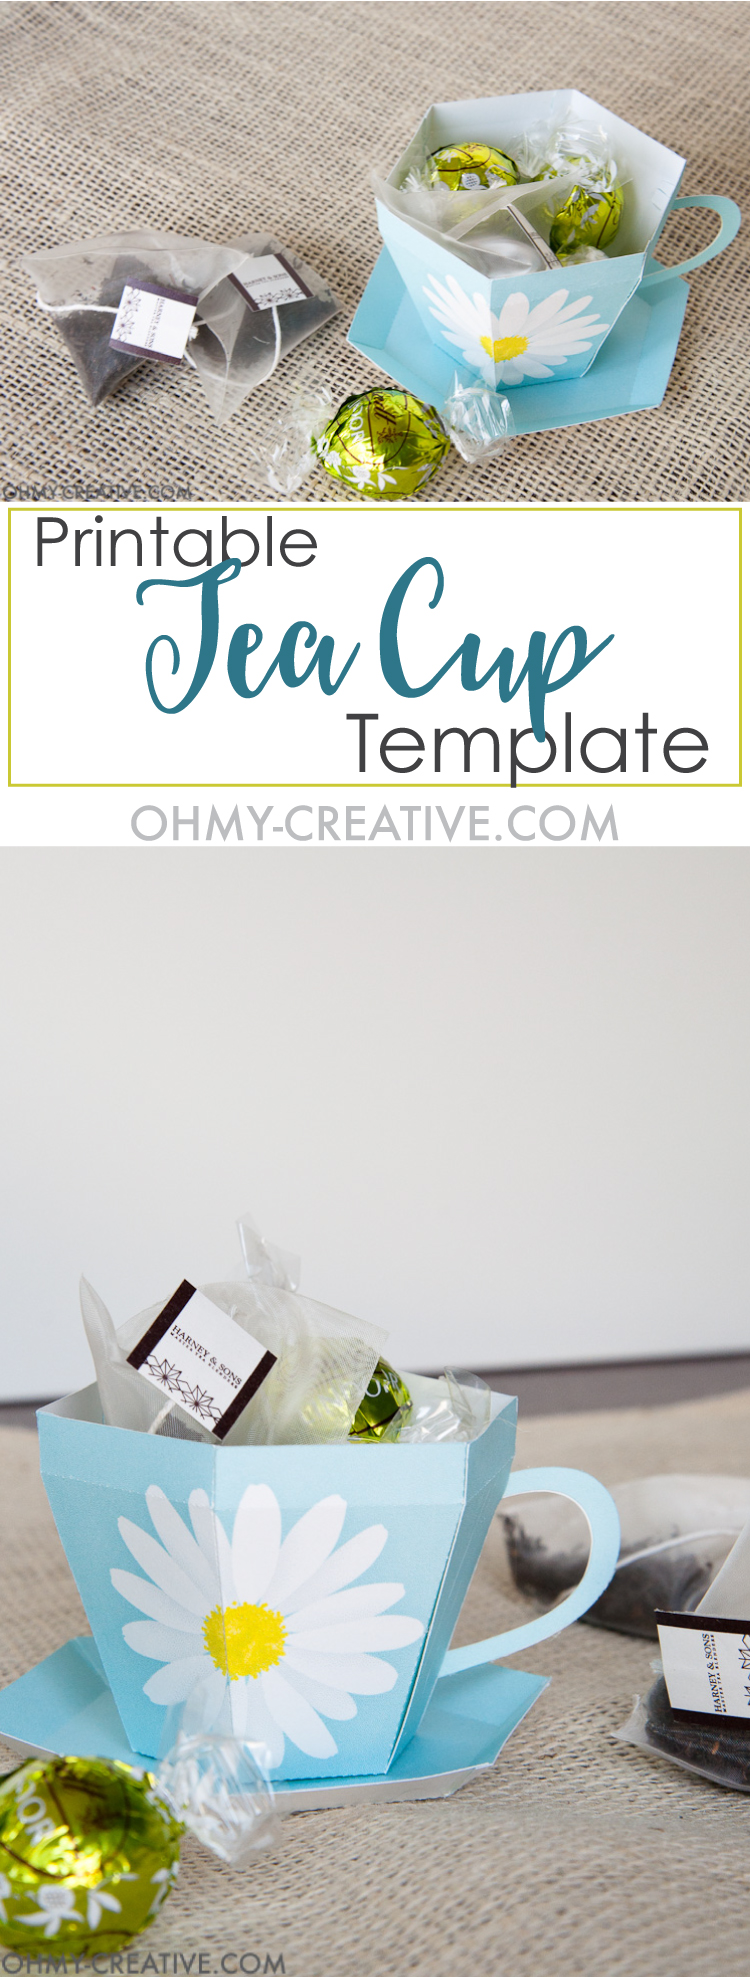 Create the perfect gift for spring with this Tea Cup Template. A tea cup gift for Mother's Day, Easter or Teacher Appreciation. OHMY-CREATIVE.COM | Paper Tea Cup | 3D Tea Cup | Tea Cup Gift | Spring Gift Ideas | Paper Tea Cup Template | Mother's Day Gift Idea | Teacher Appreciation Gift | Bridal Shower Favor